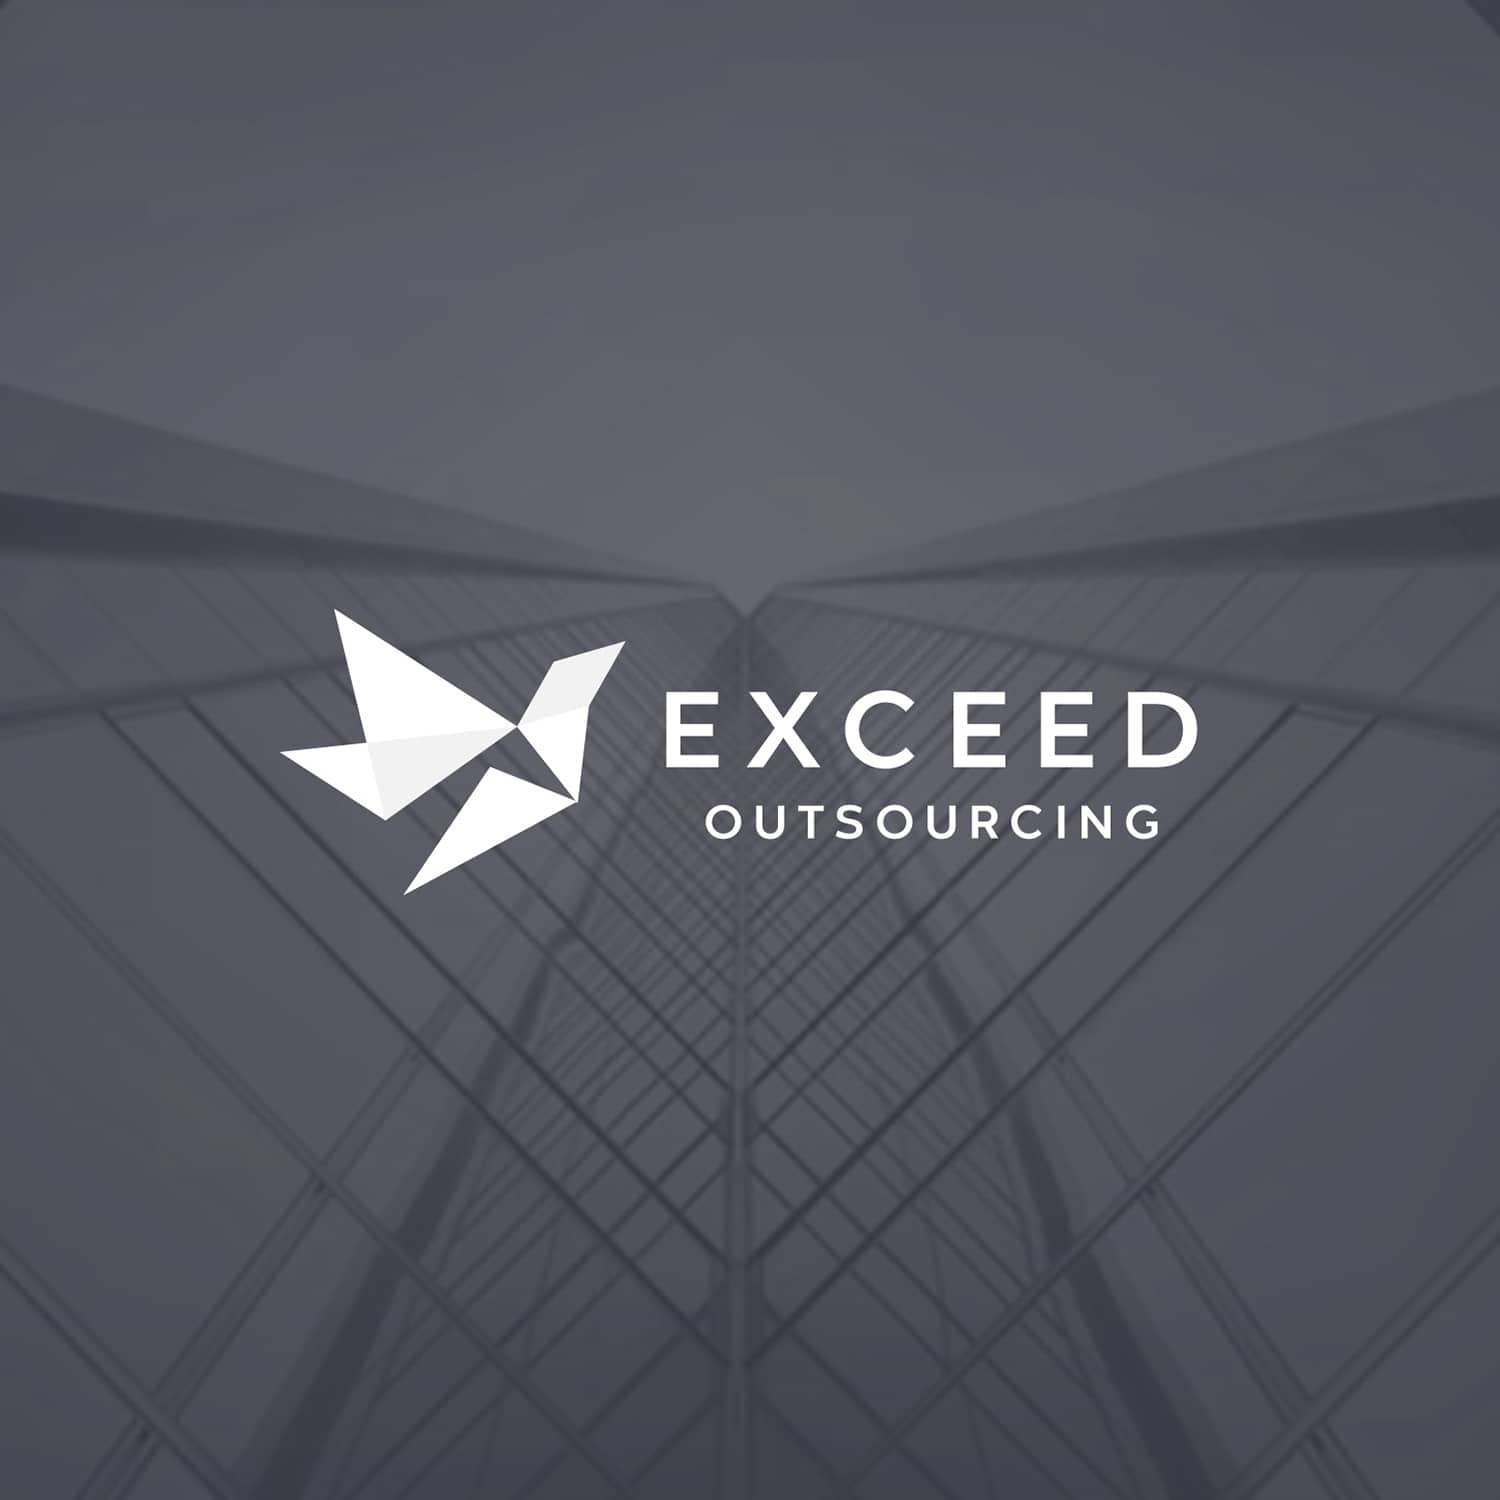 Our Story - About Exceed Outsourcing